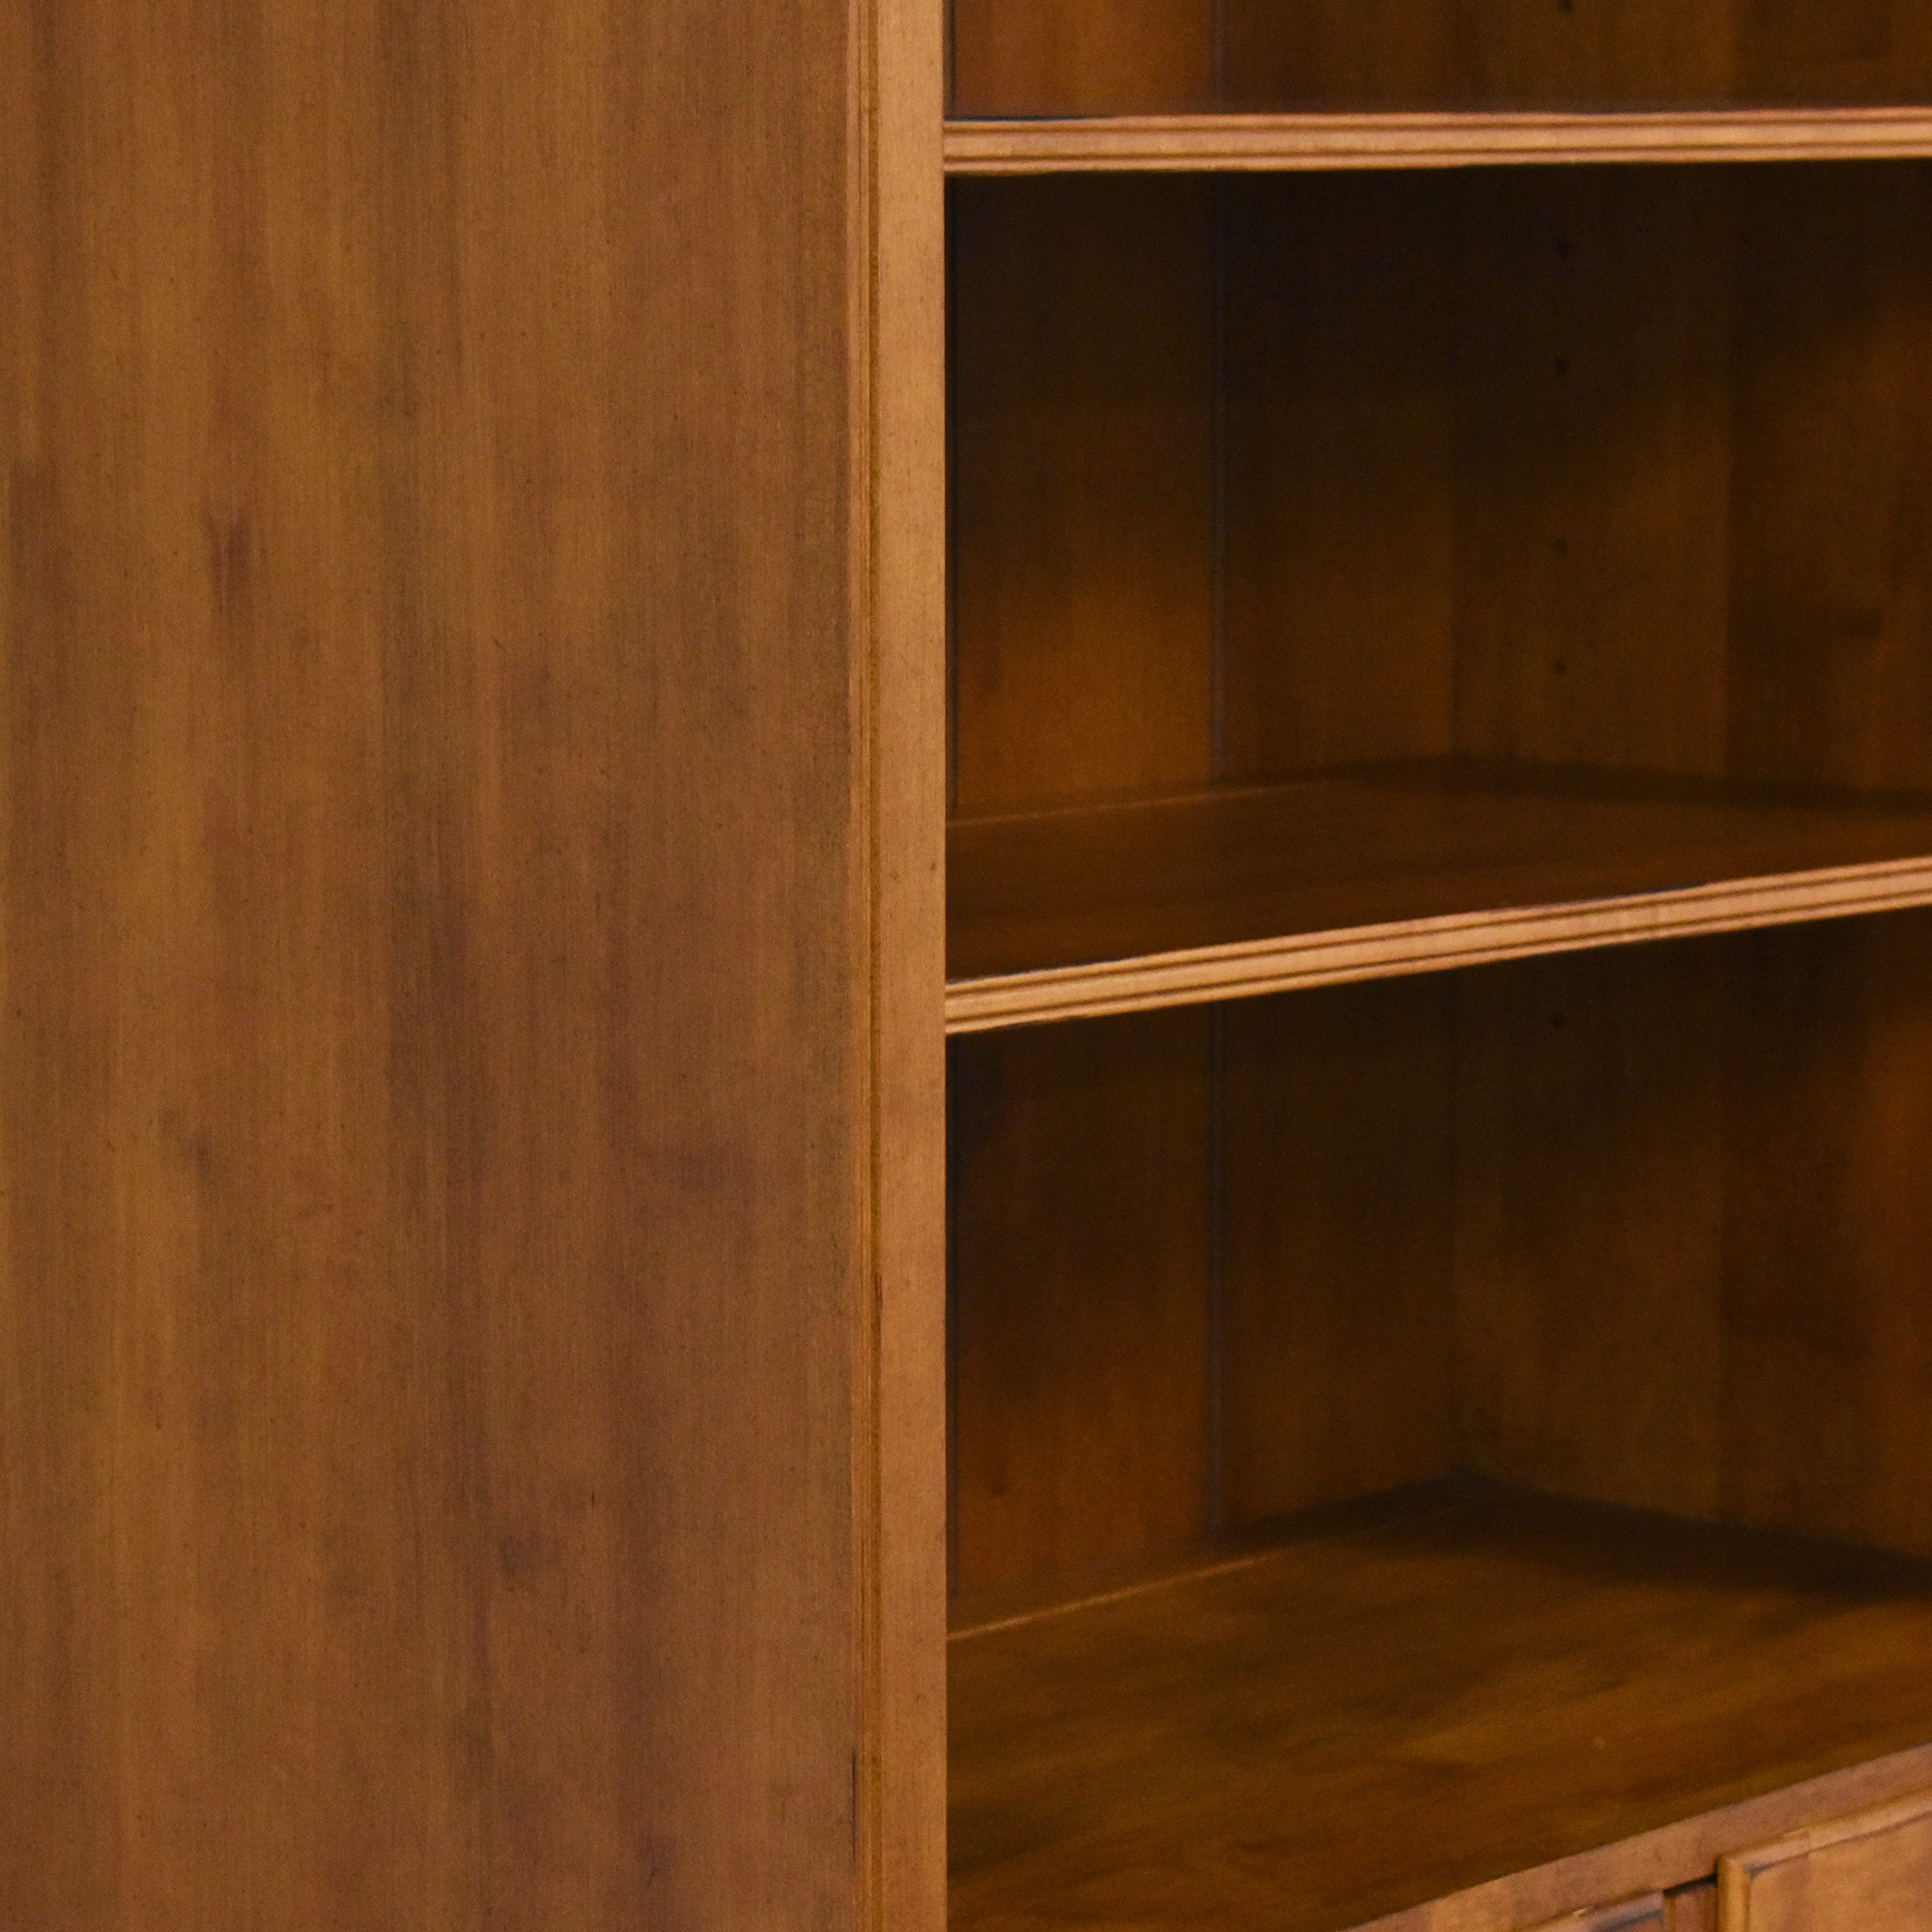 Ethan Allen Ethan Allen Circa 1776 Collection Bookcase with Cabinet on sale